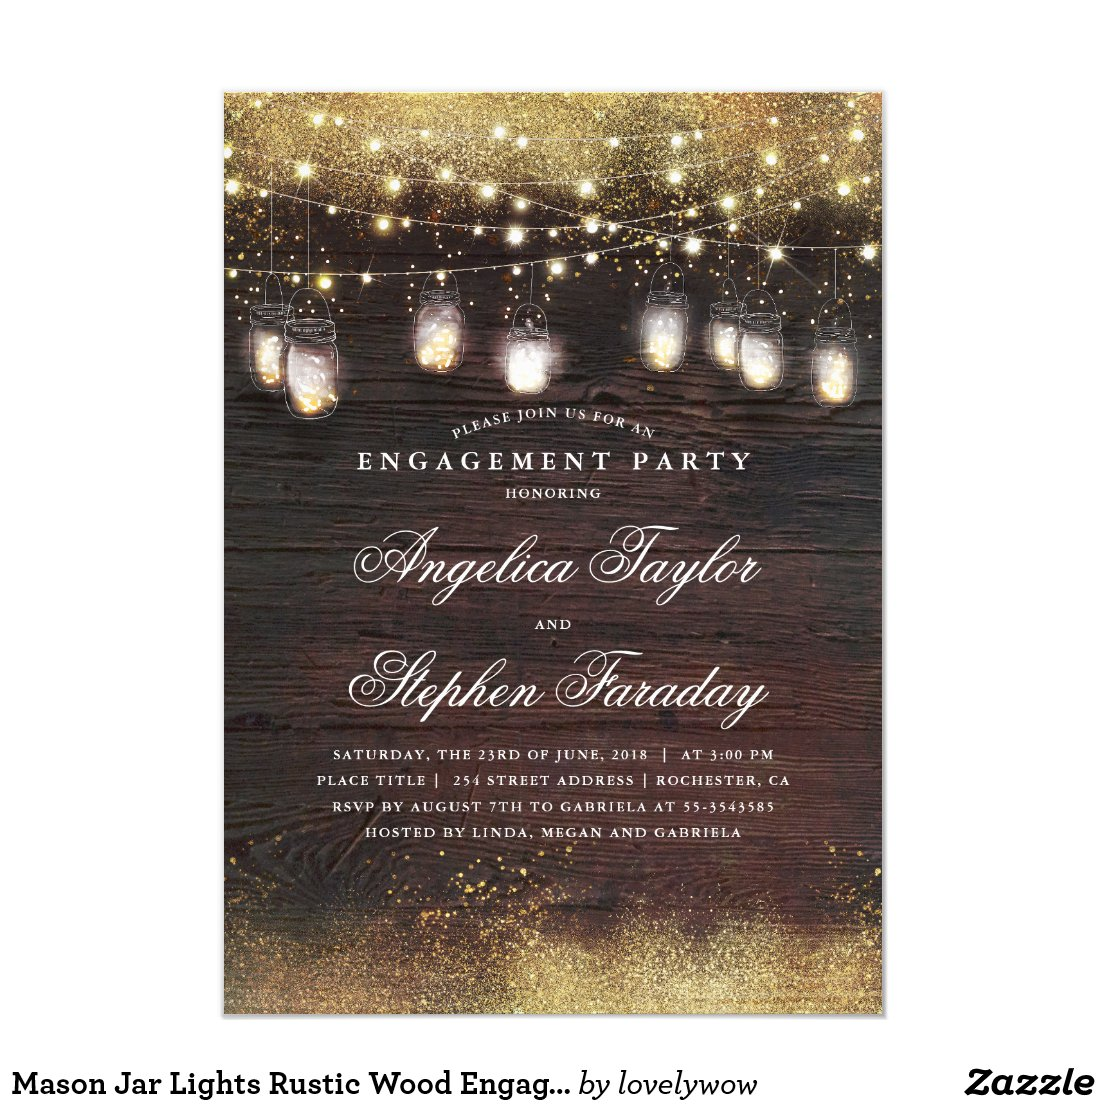 Mason Jar Lights Rustic Wood Engagement Party Invitation